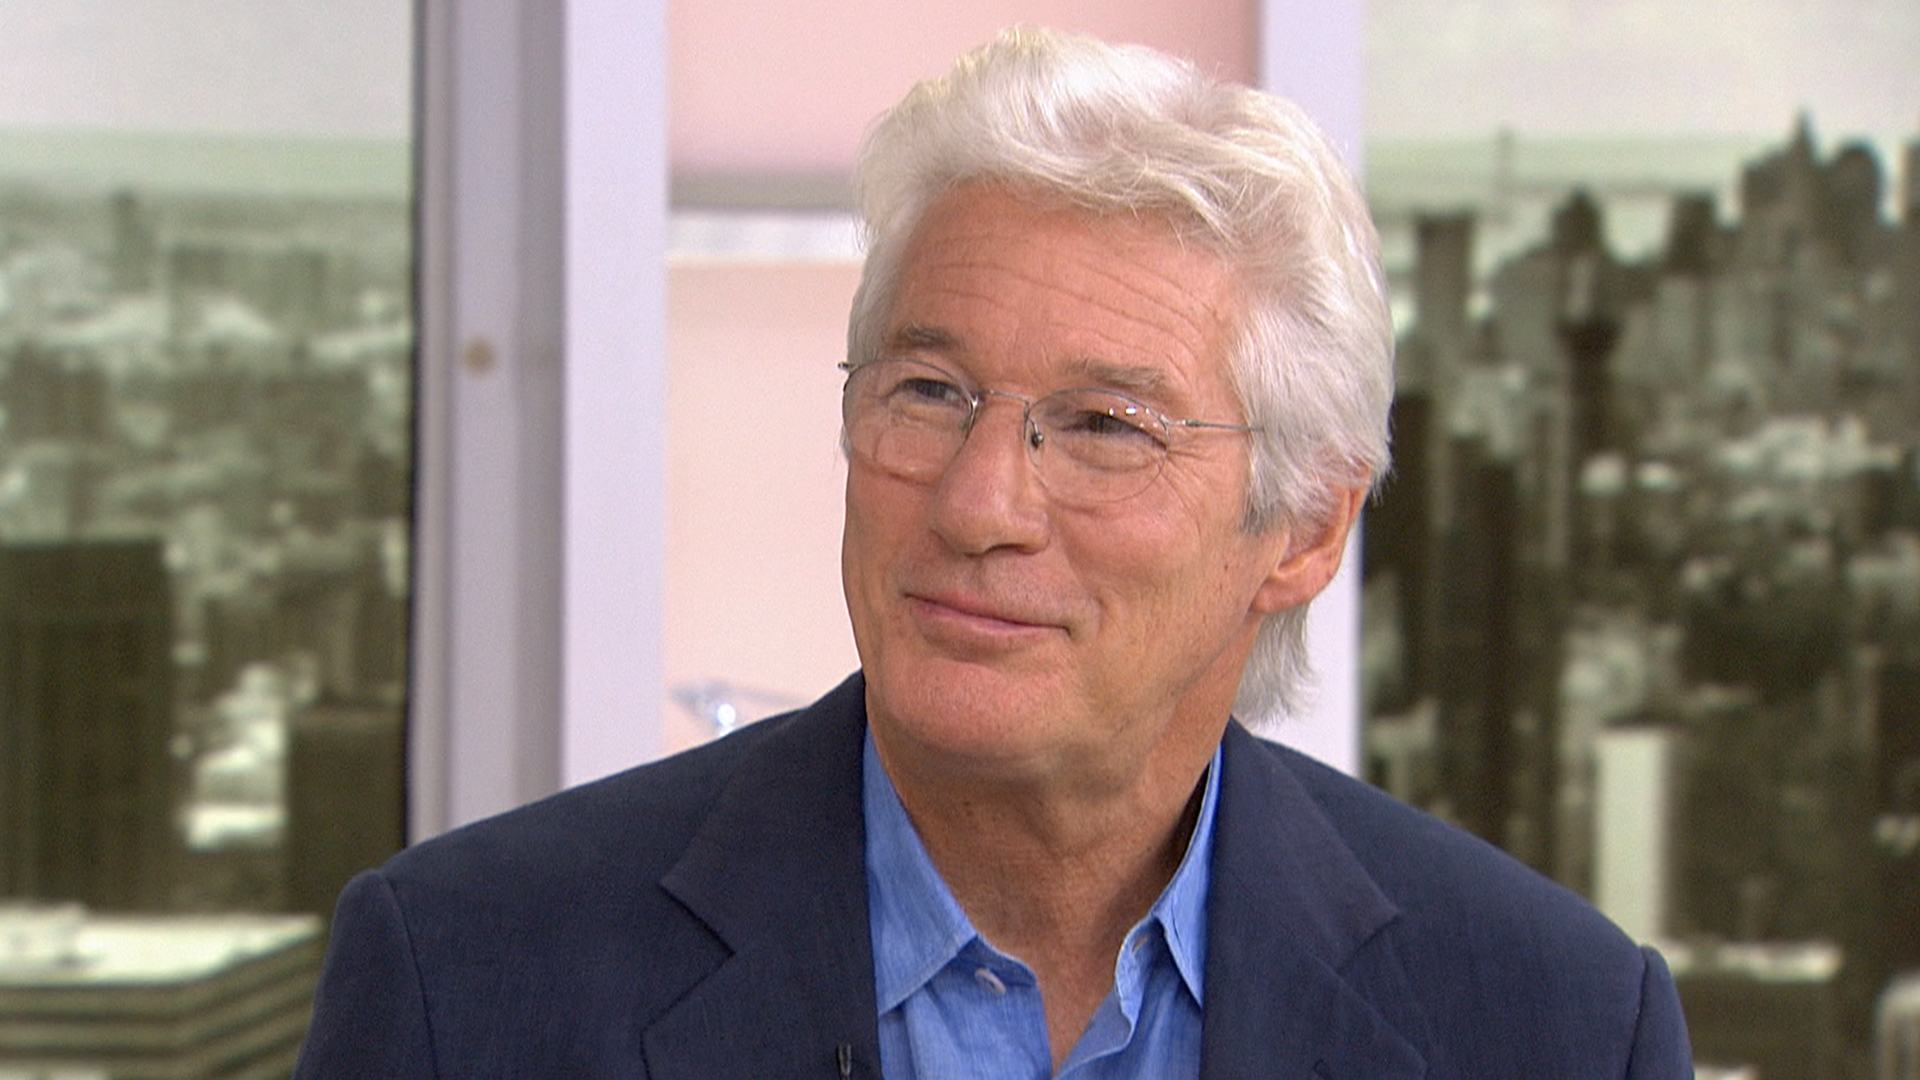 Richard Gere: Richard Gere On Portraying A Homeless Man In NYC For New